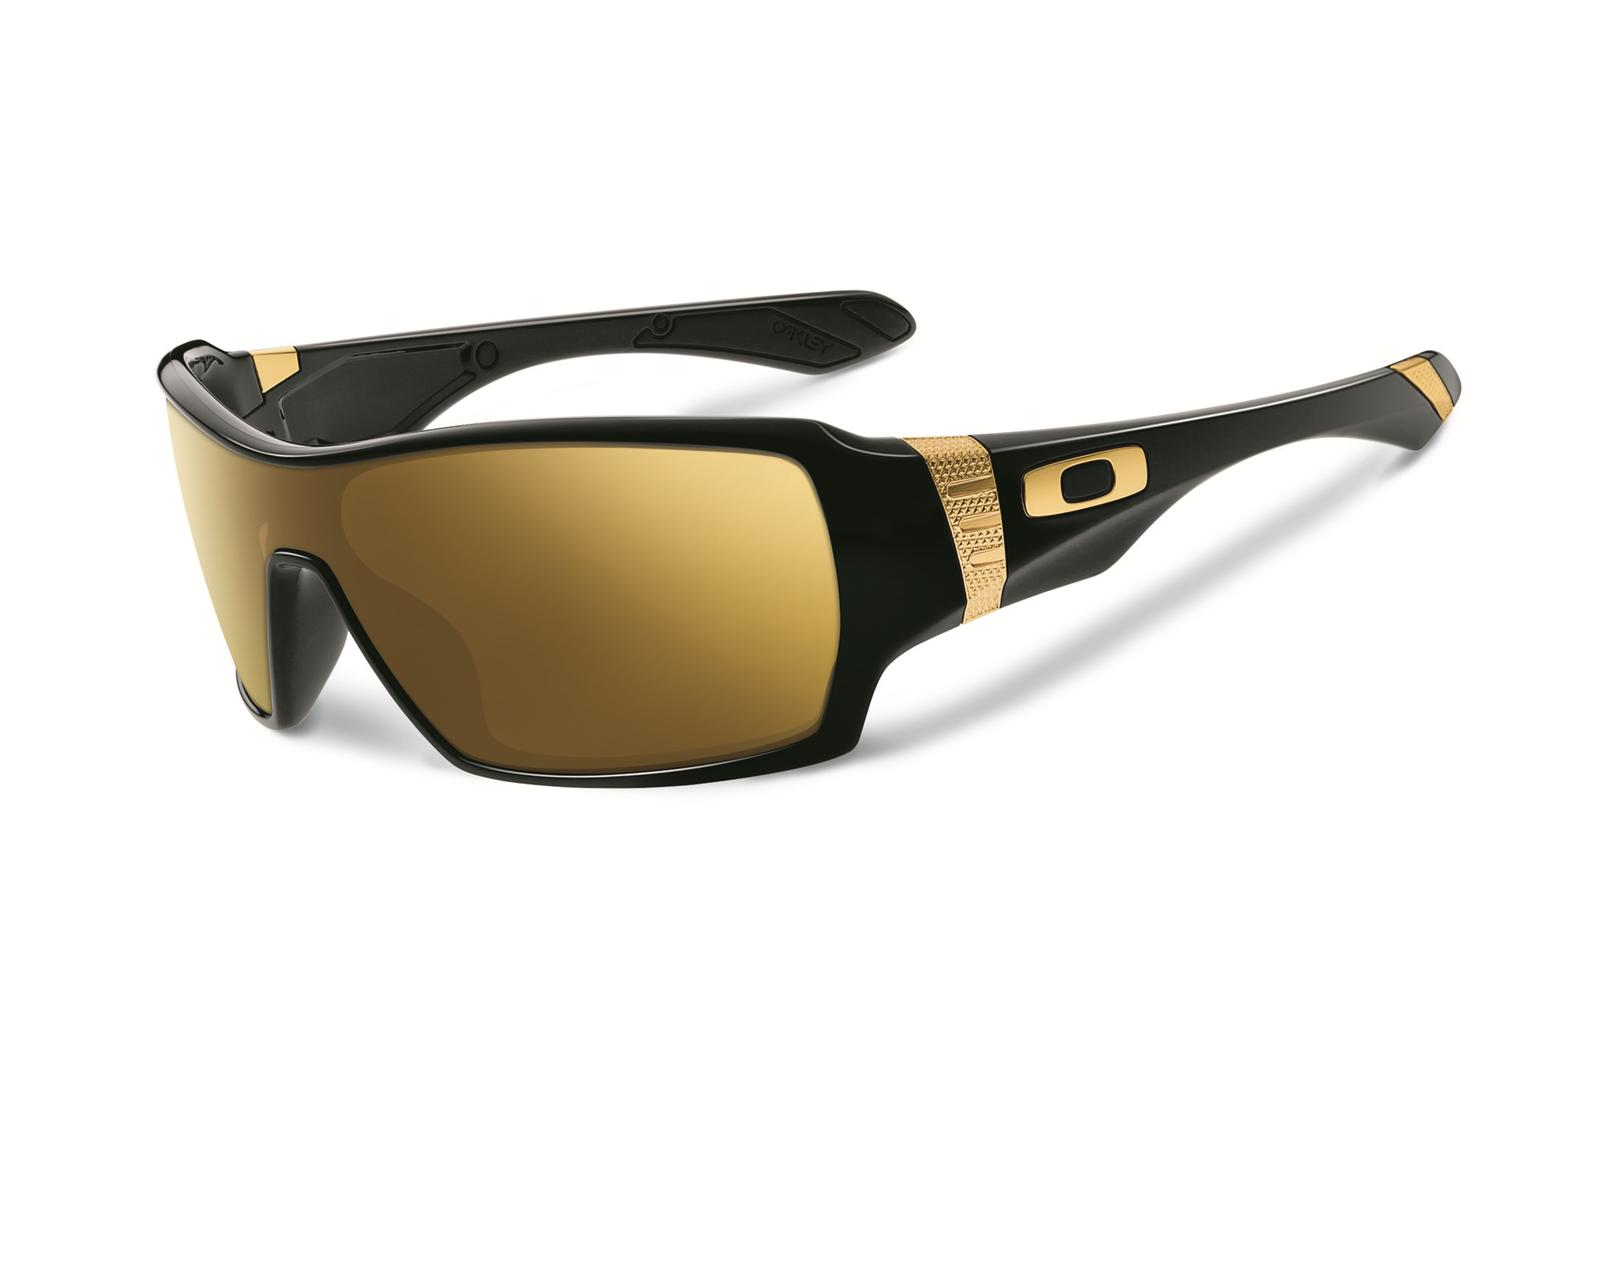 ccbc7b6b3a0 Oakley Shaun White Signature Series Offshoot Sunglasses OO9190-07 - Free  Shipping on Orders Over  99 at Summit Racing